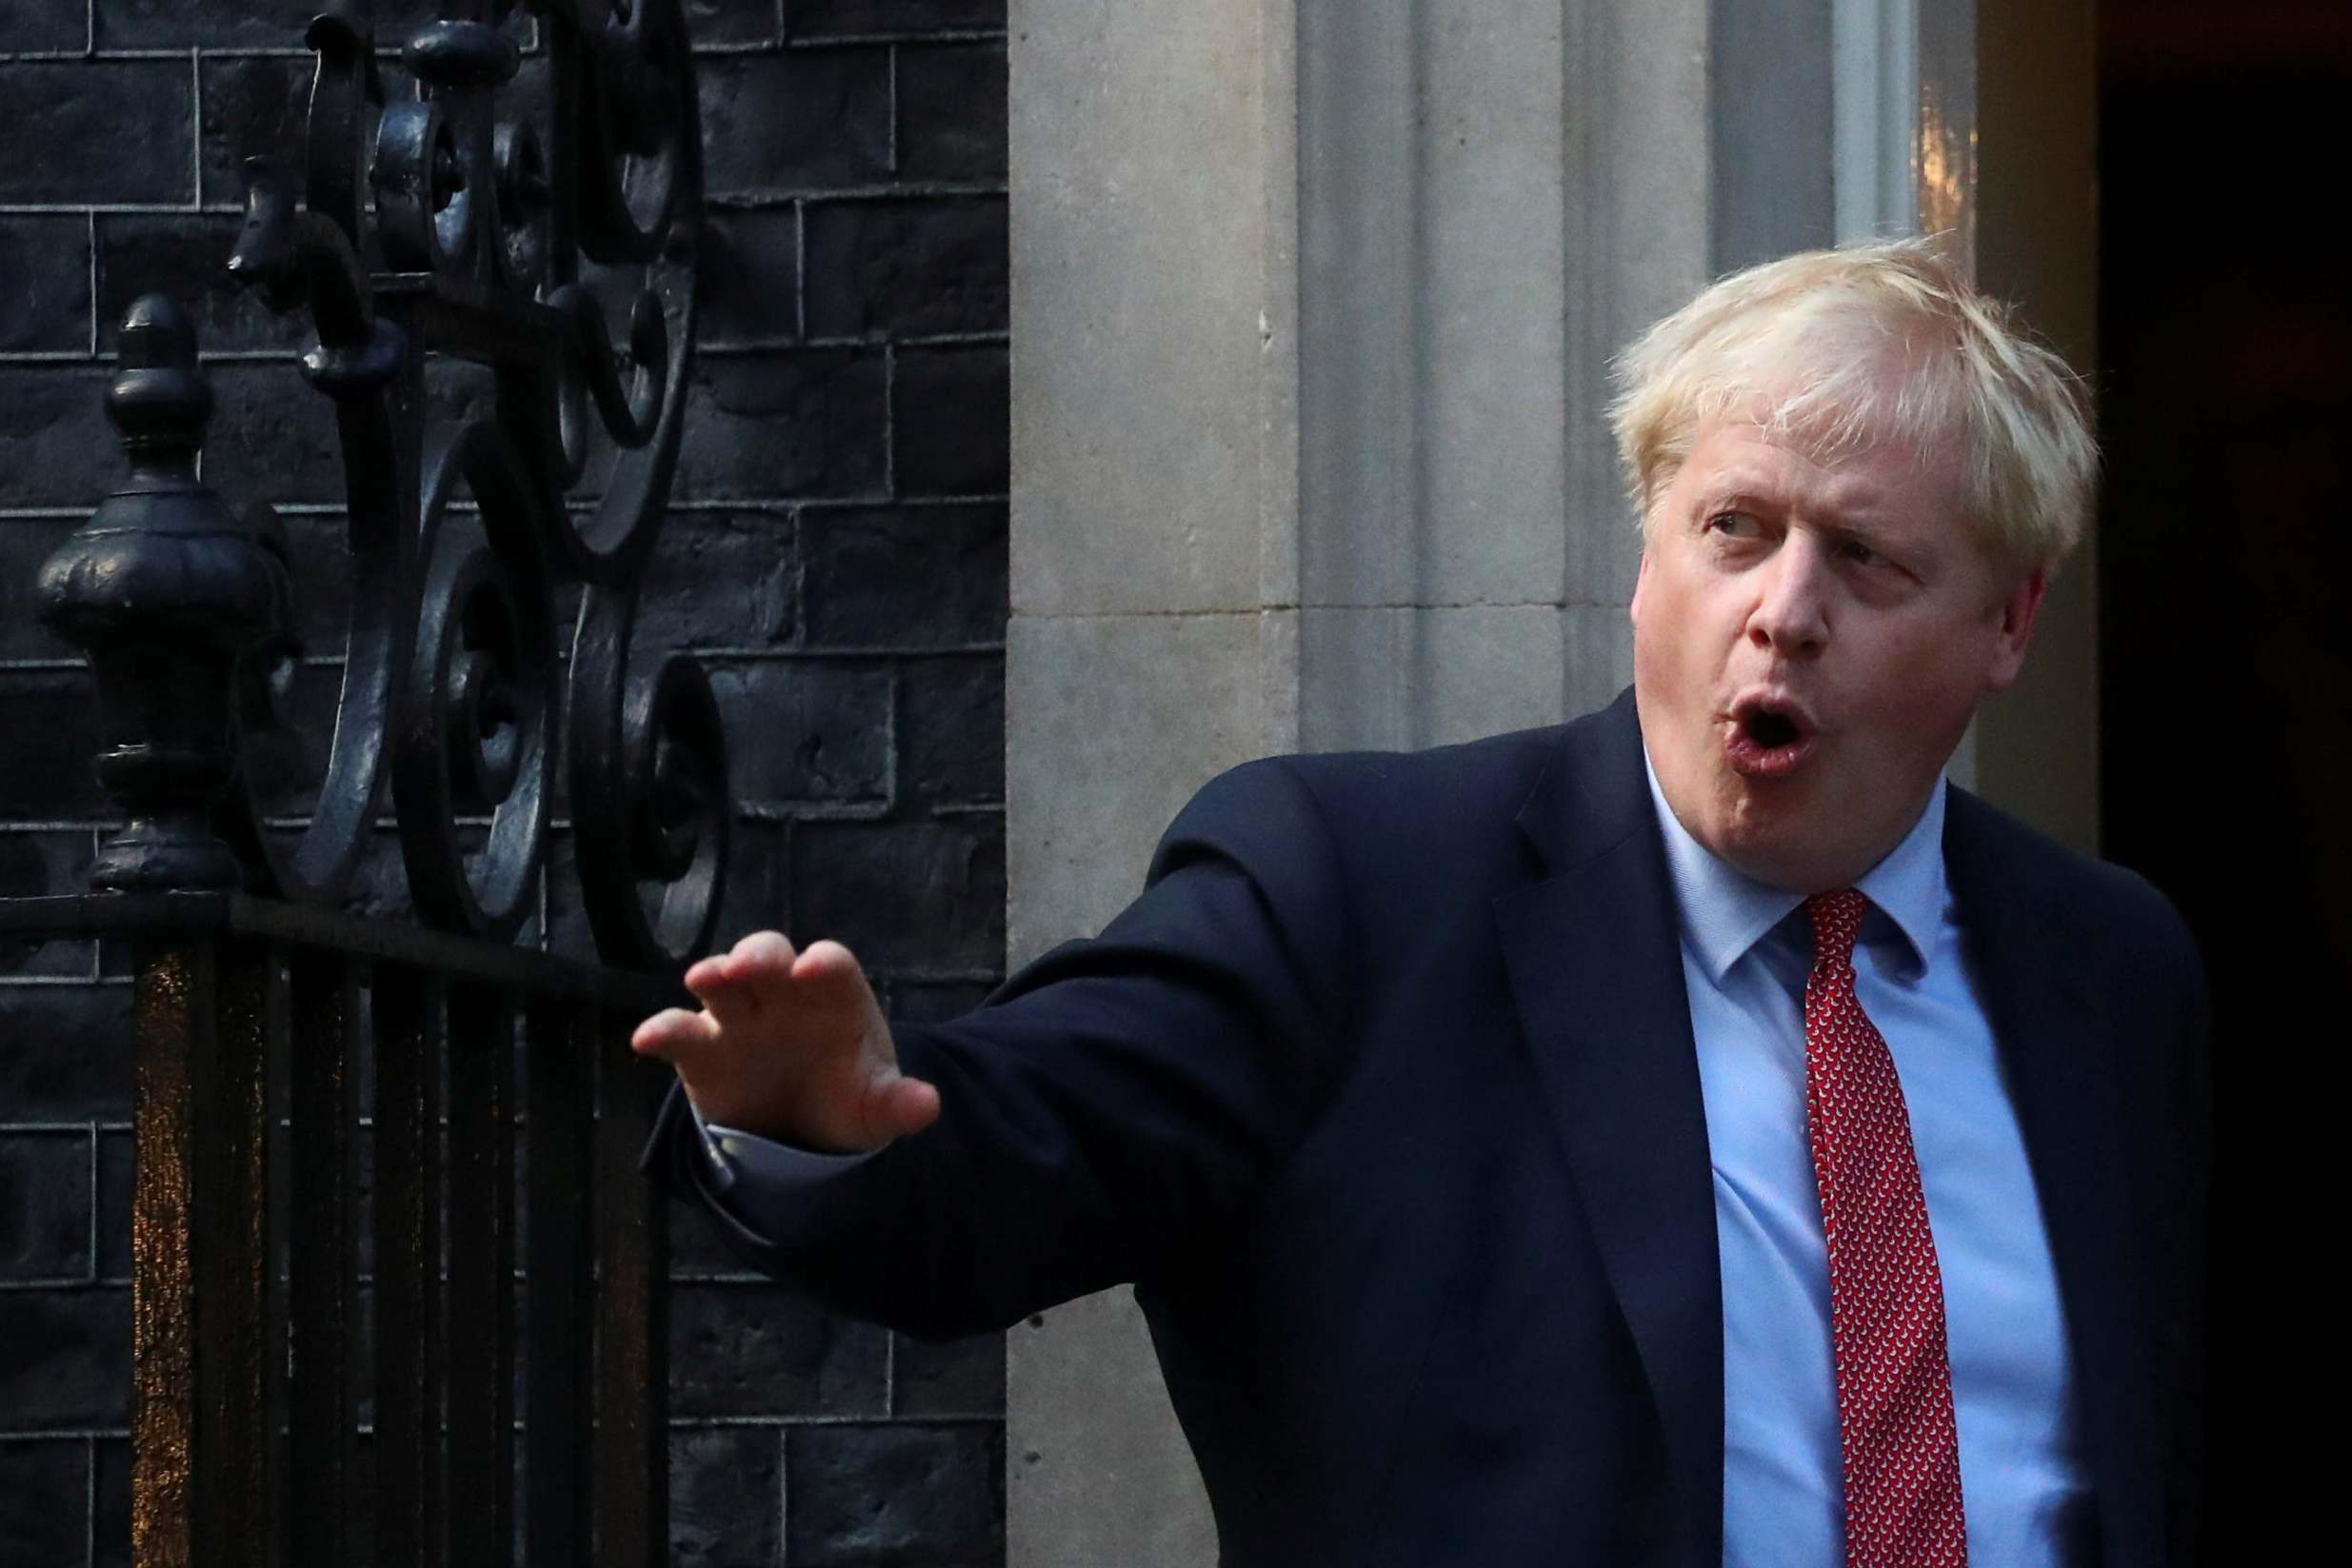 Boris Johnson news – live: Parliament clears way for second Brexit referendum vote after DUP shoots down PM's deal within moments of announcement